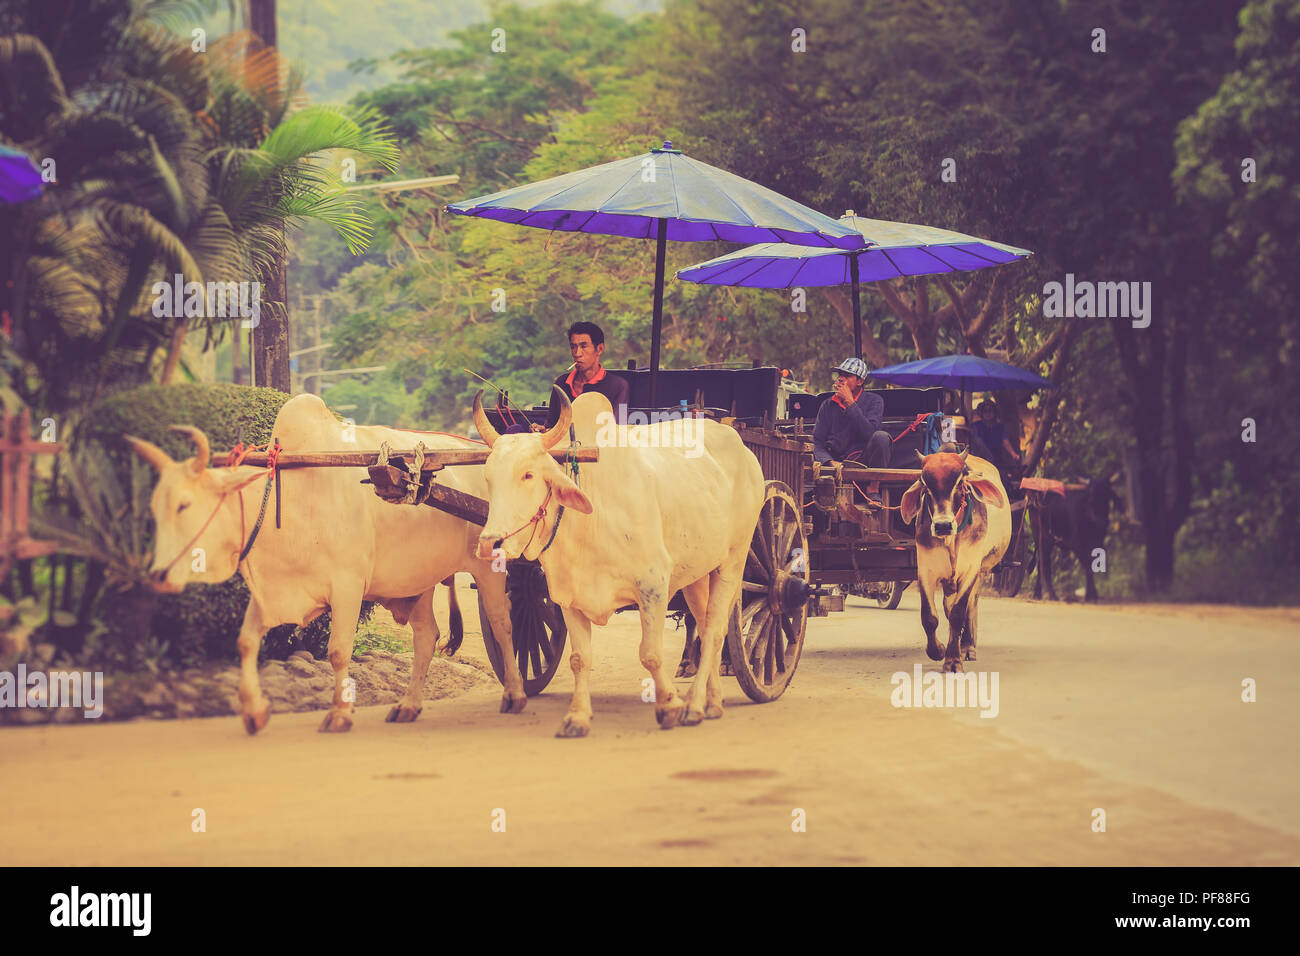 Traditional asian culture old style ox cart transportation traveller people in a national park - Stock Image